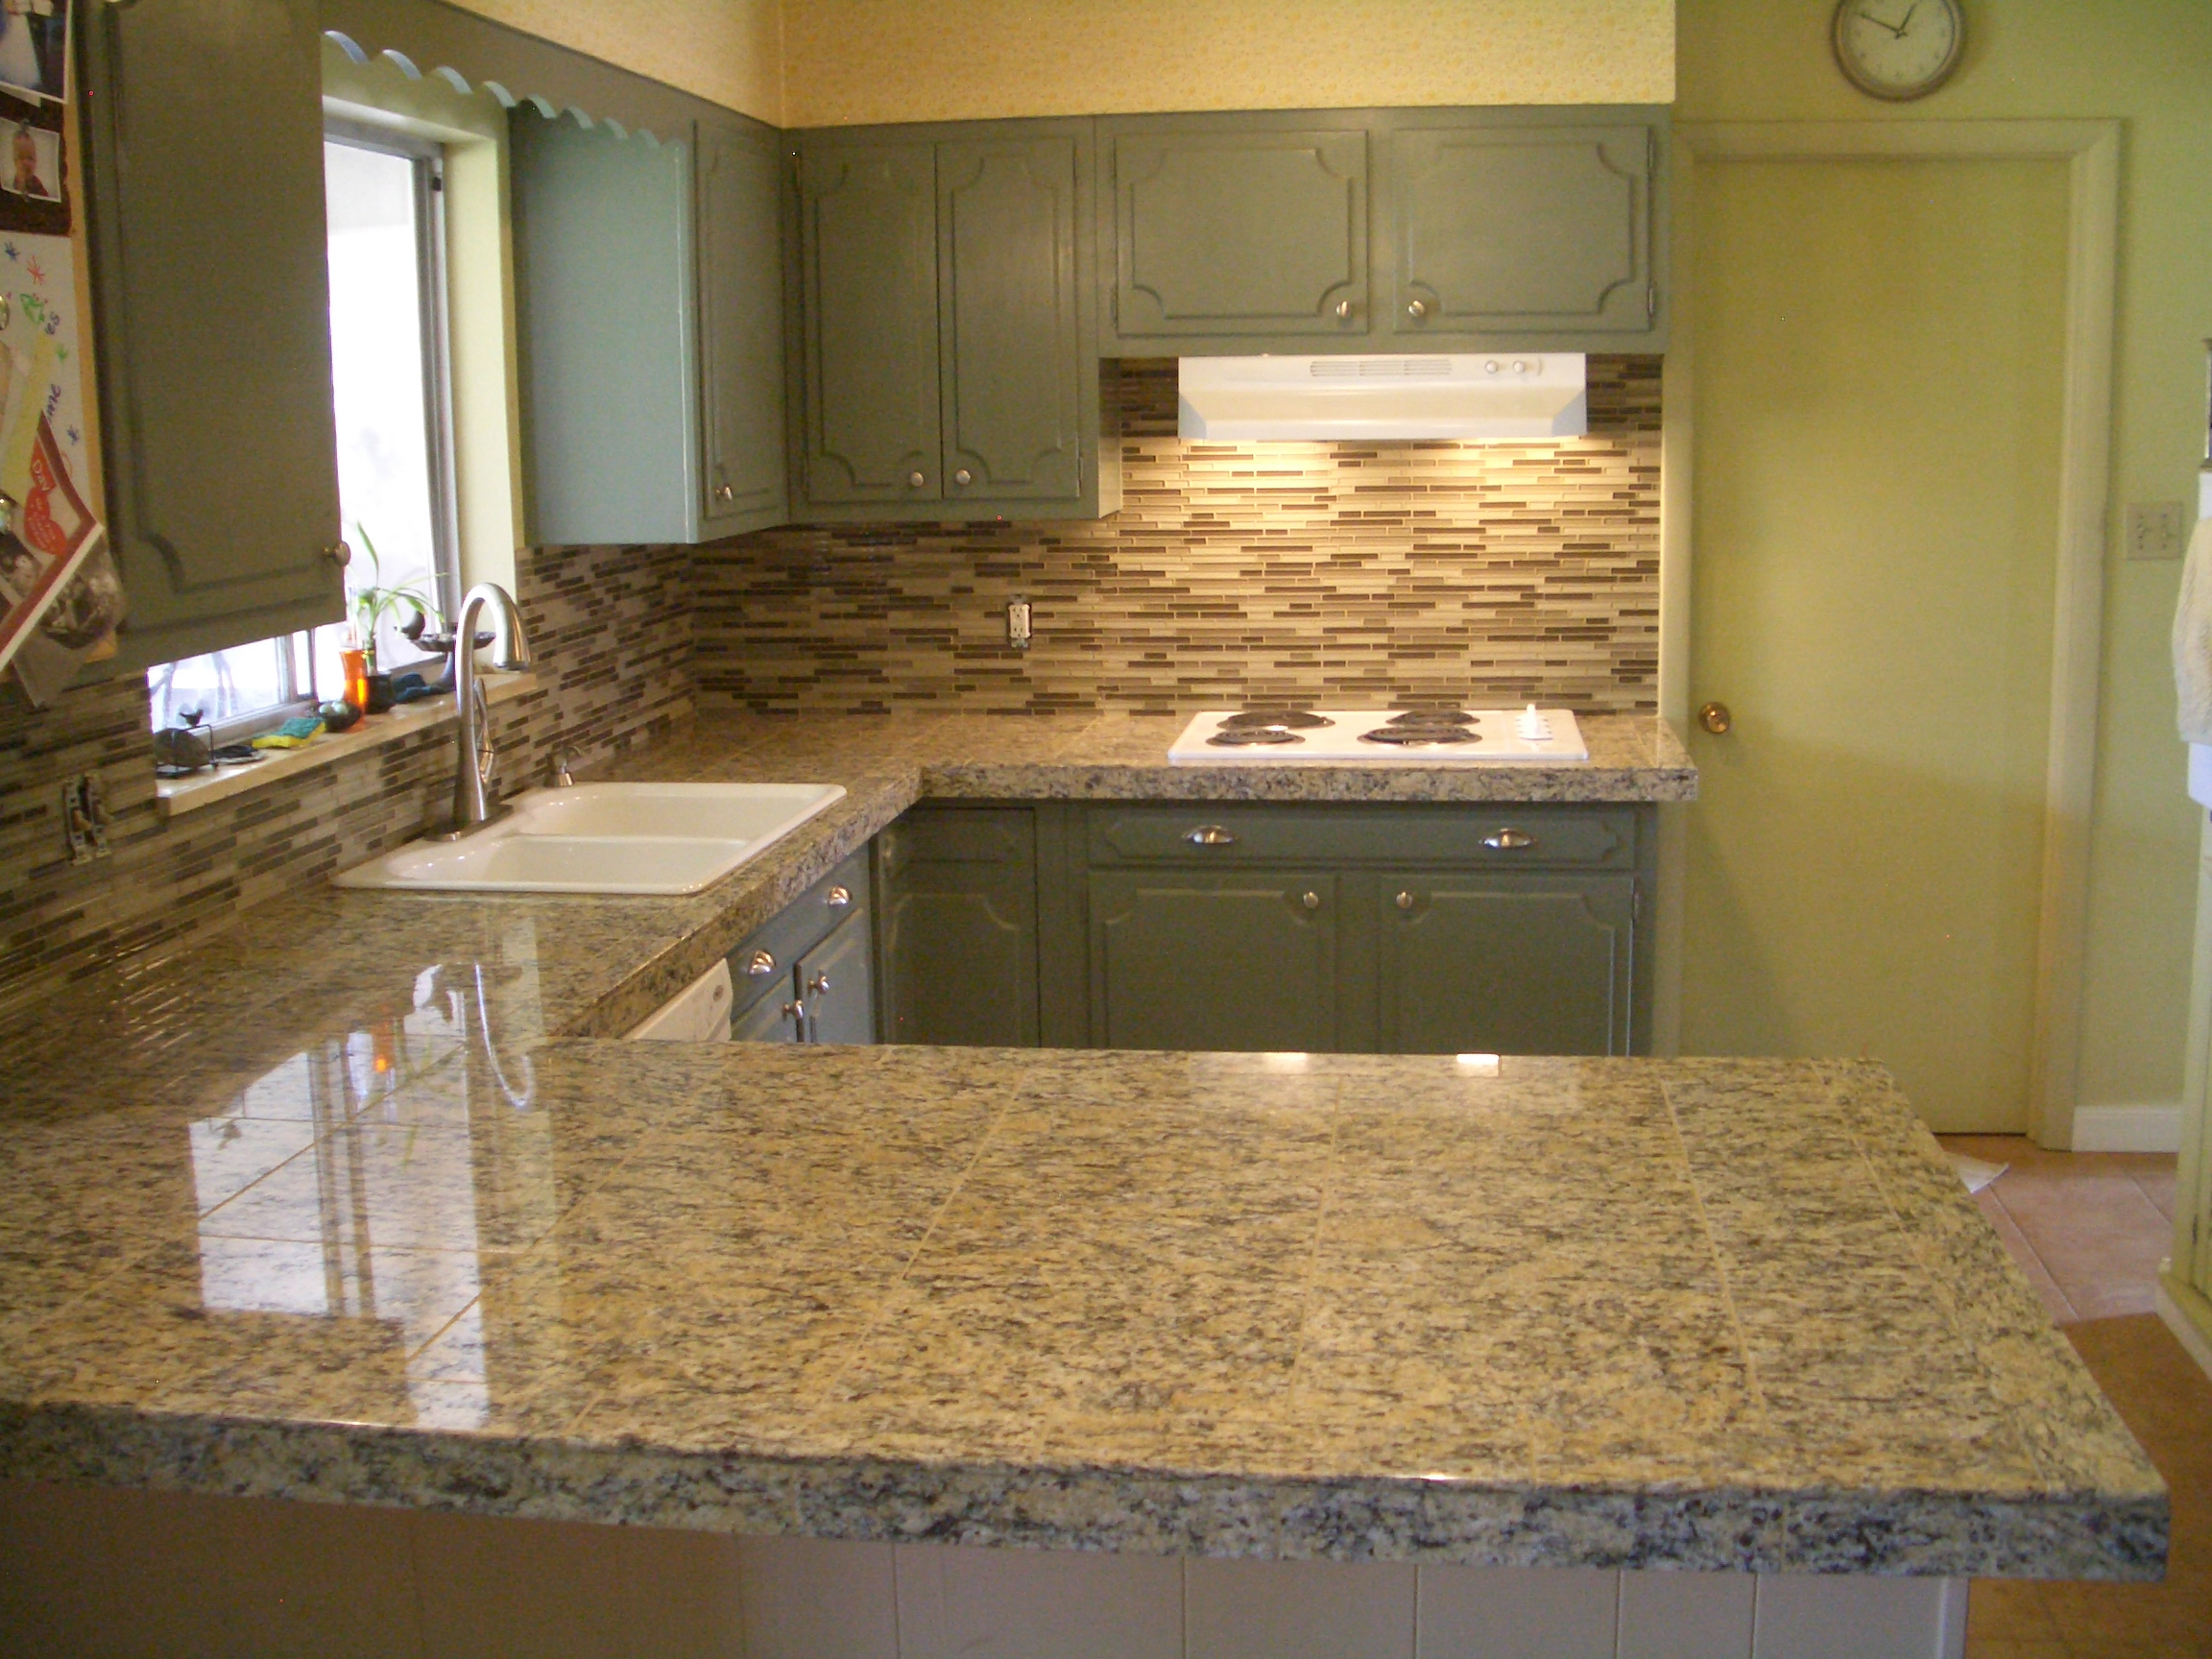 Kitchen Tiles Granite Glass Tile Backsplash Home Design And Decor Reviews